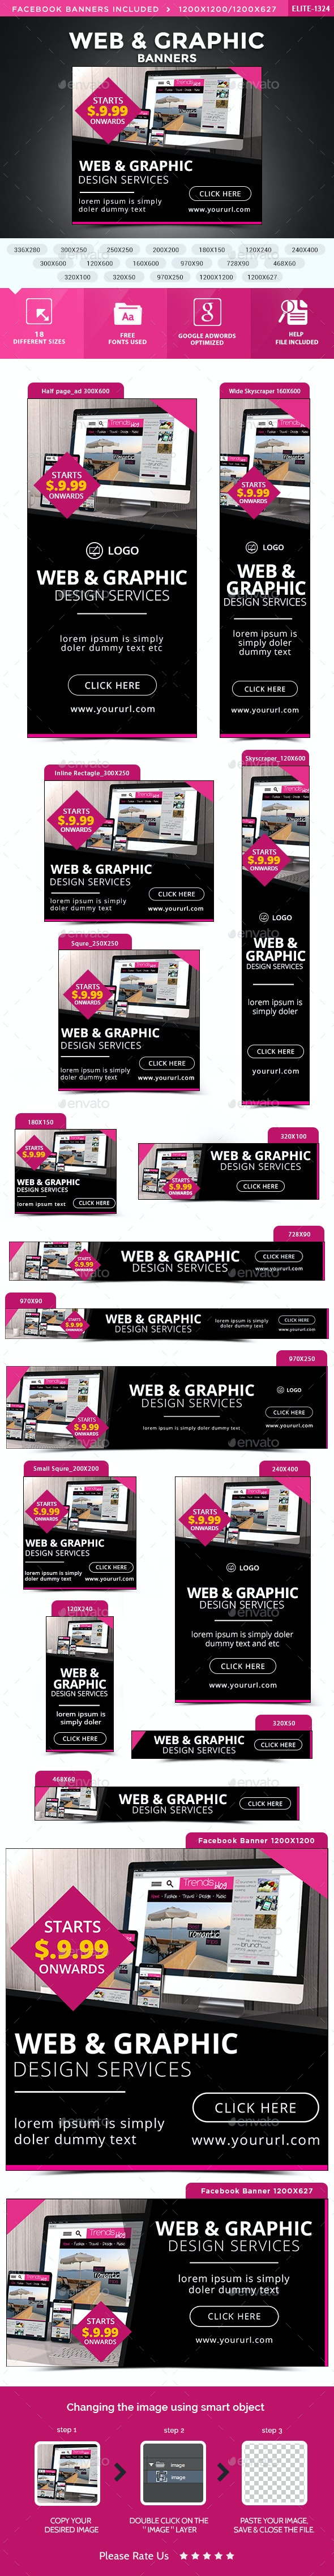 Web & Graphic Banners - Banners & Ads Web Elements